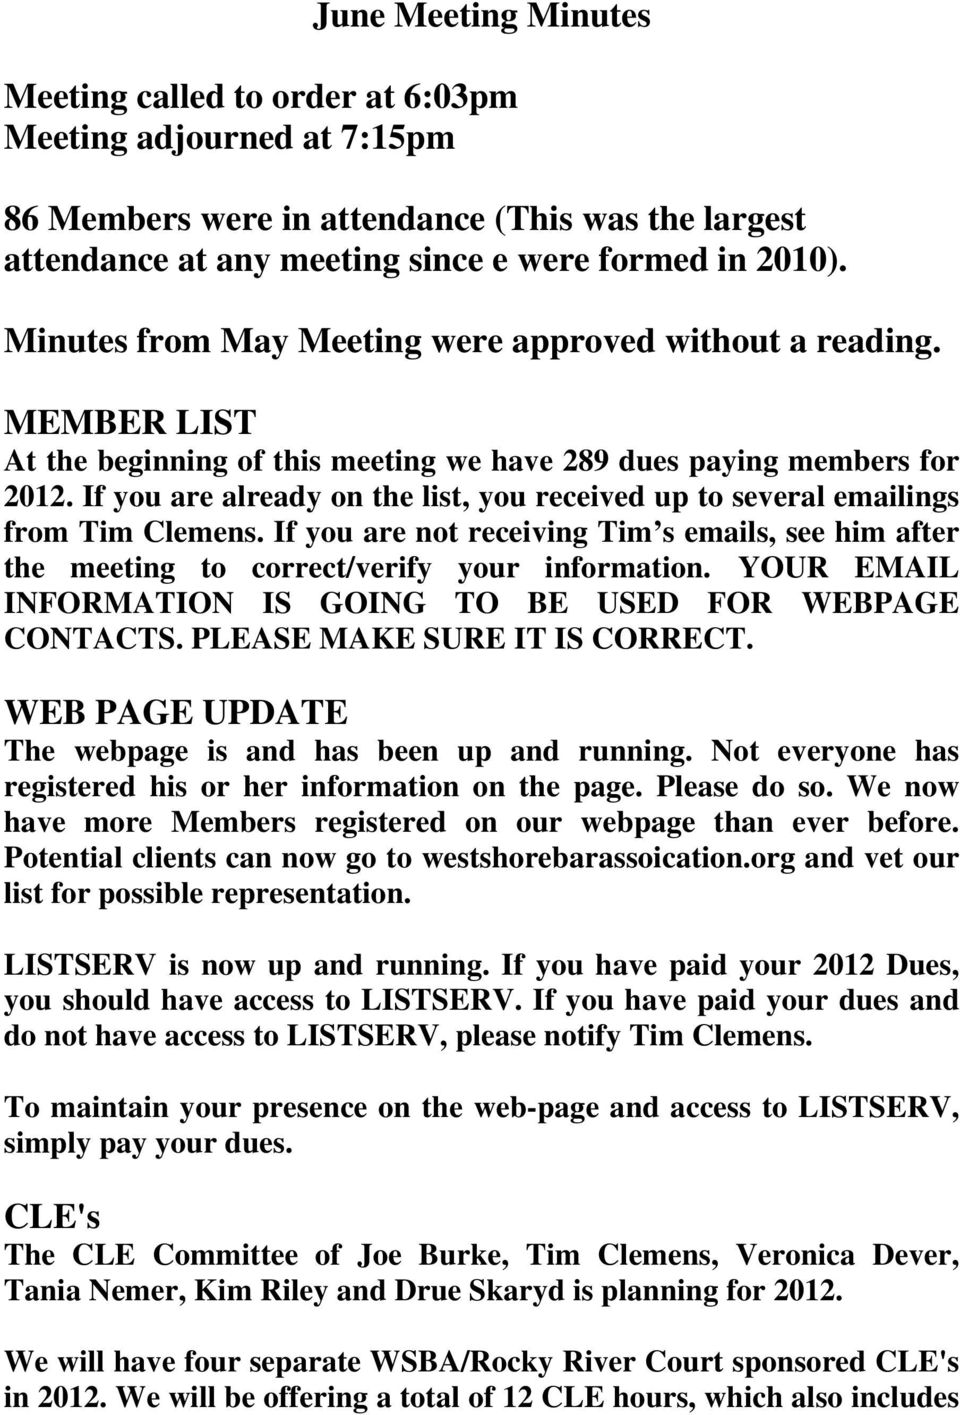 If you are already on the list, you received up to several emailings from Tim Clemens. If you are not receiving Tim s emails, see him after the meeting to correct/verify your information.